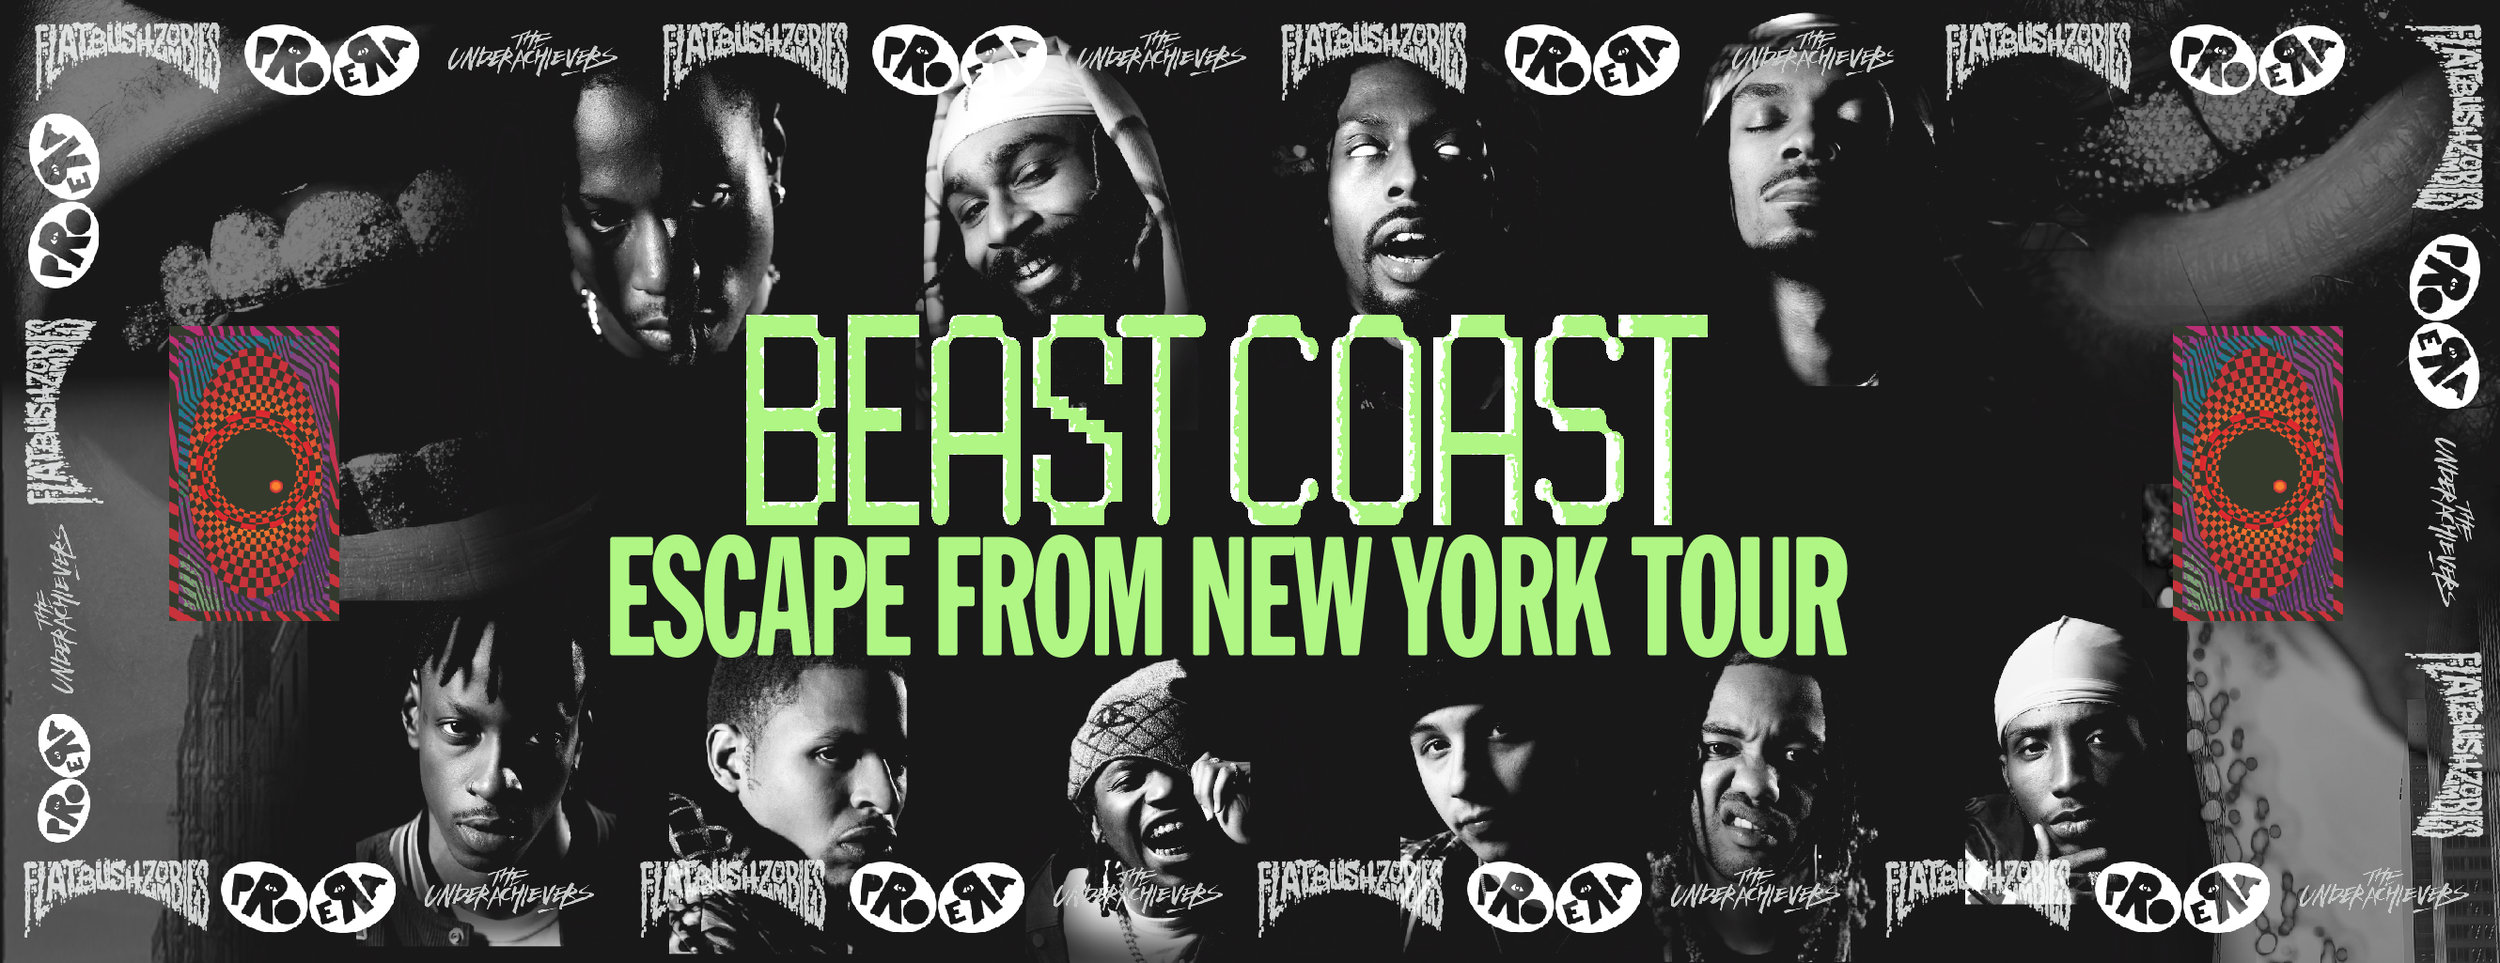 BEAST COAST ESCAPE FROM NEW YORK TOUR